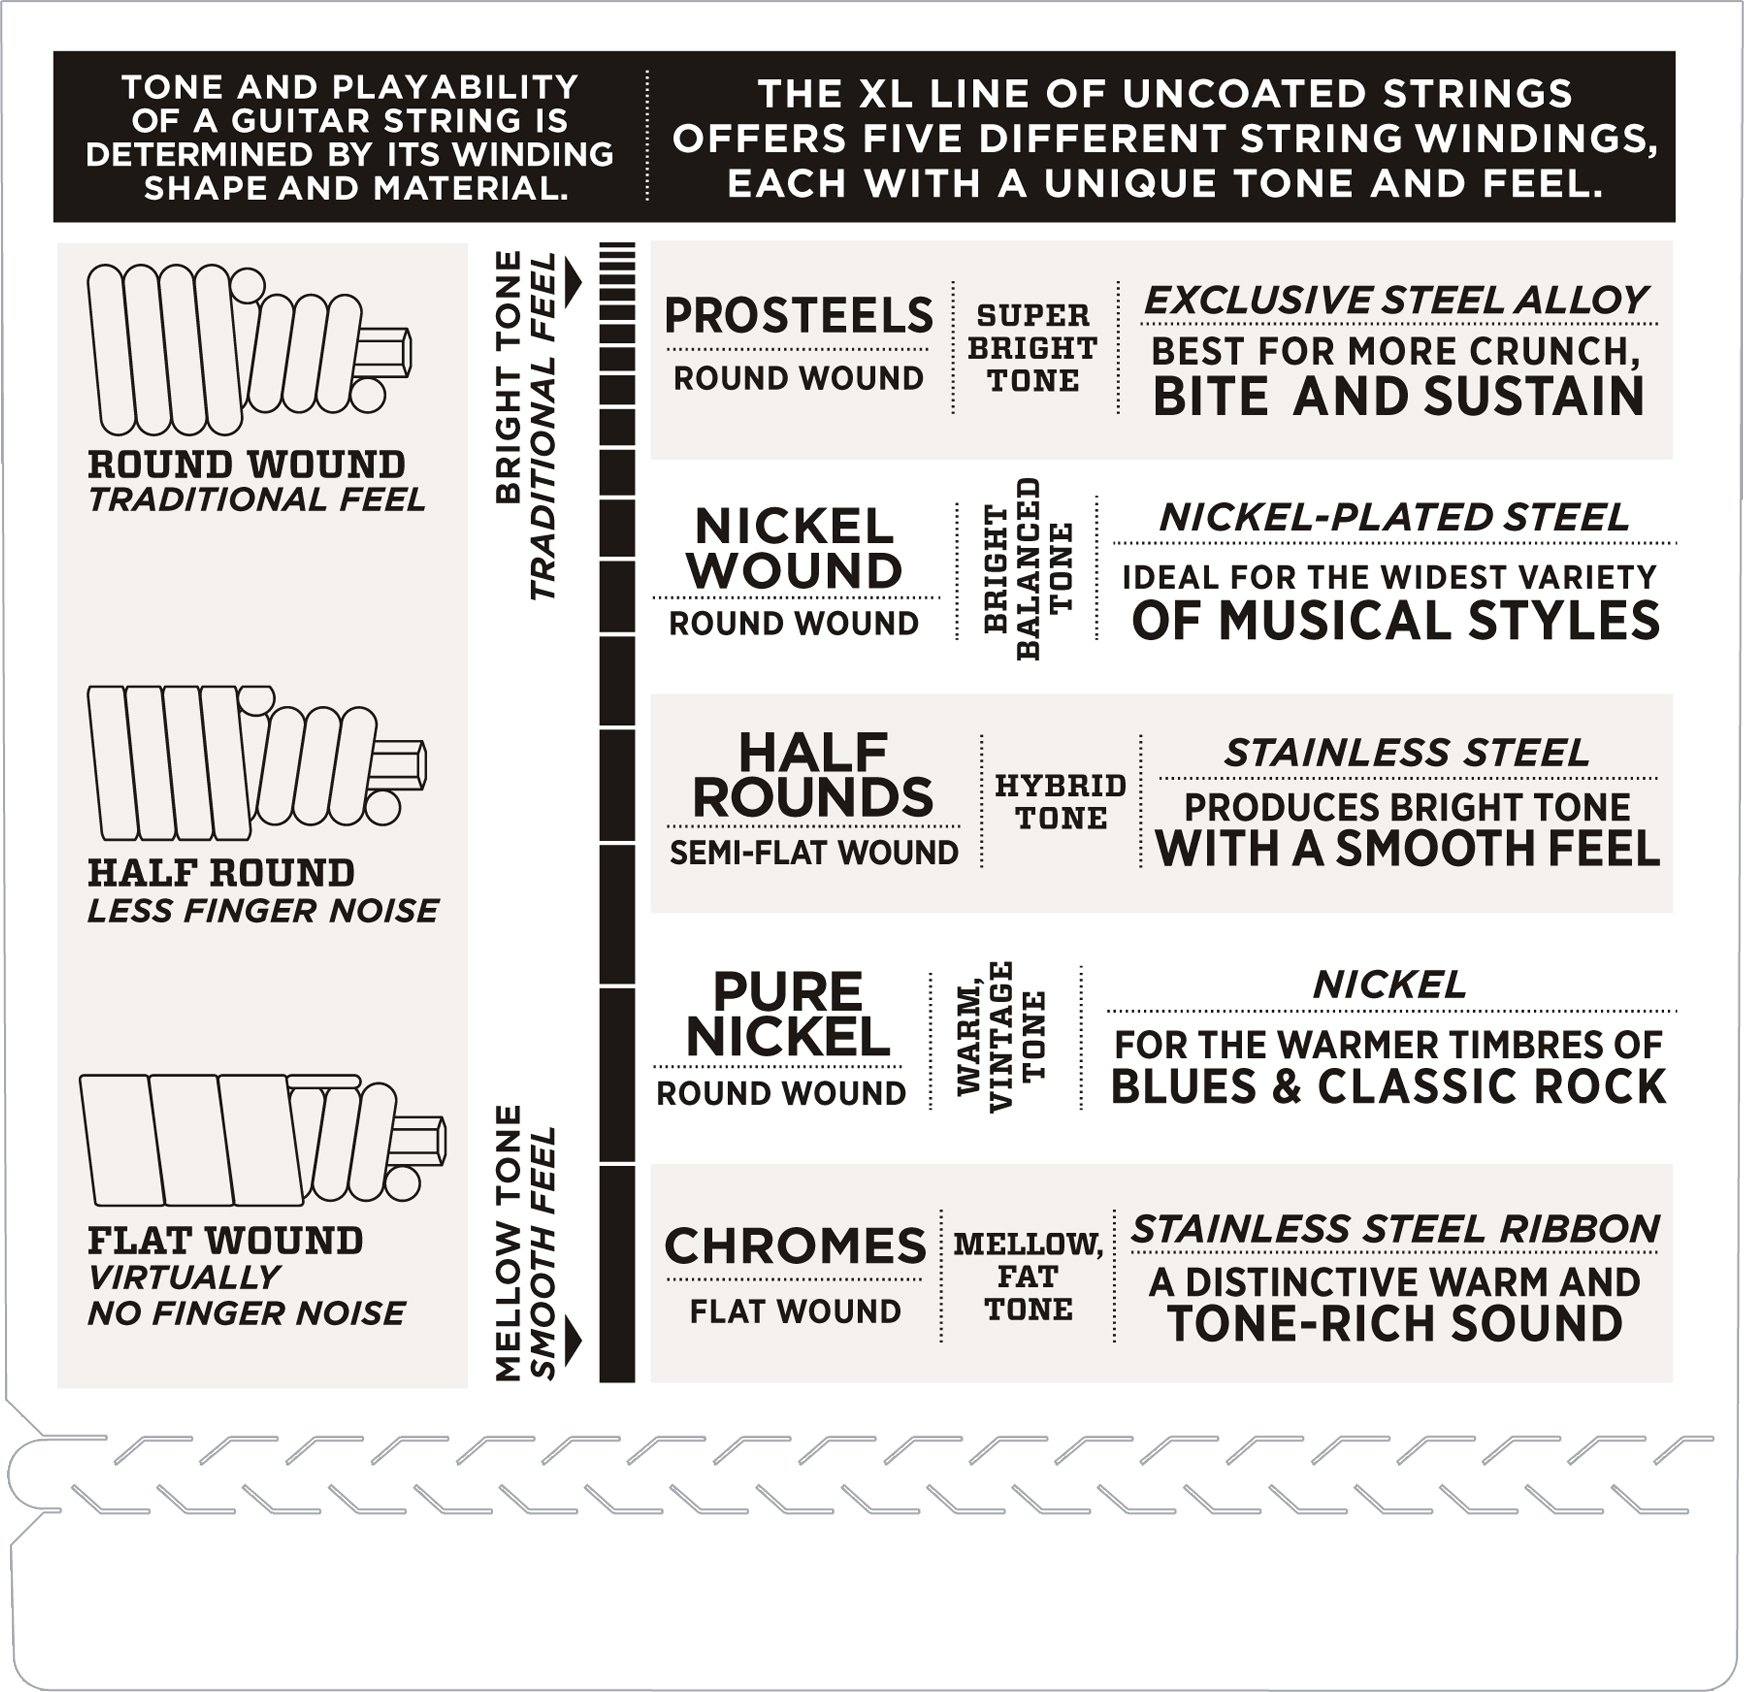 D'Addario EXL170 Nickel Wound Bass Guitar Strings, Light, 45-100, Long Scale by D'Addario Woodwinds (Image #4)